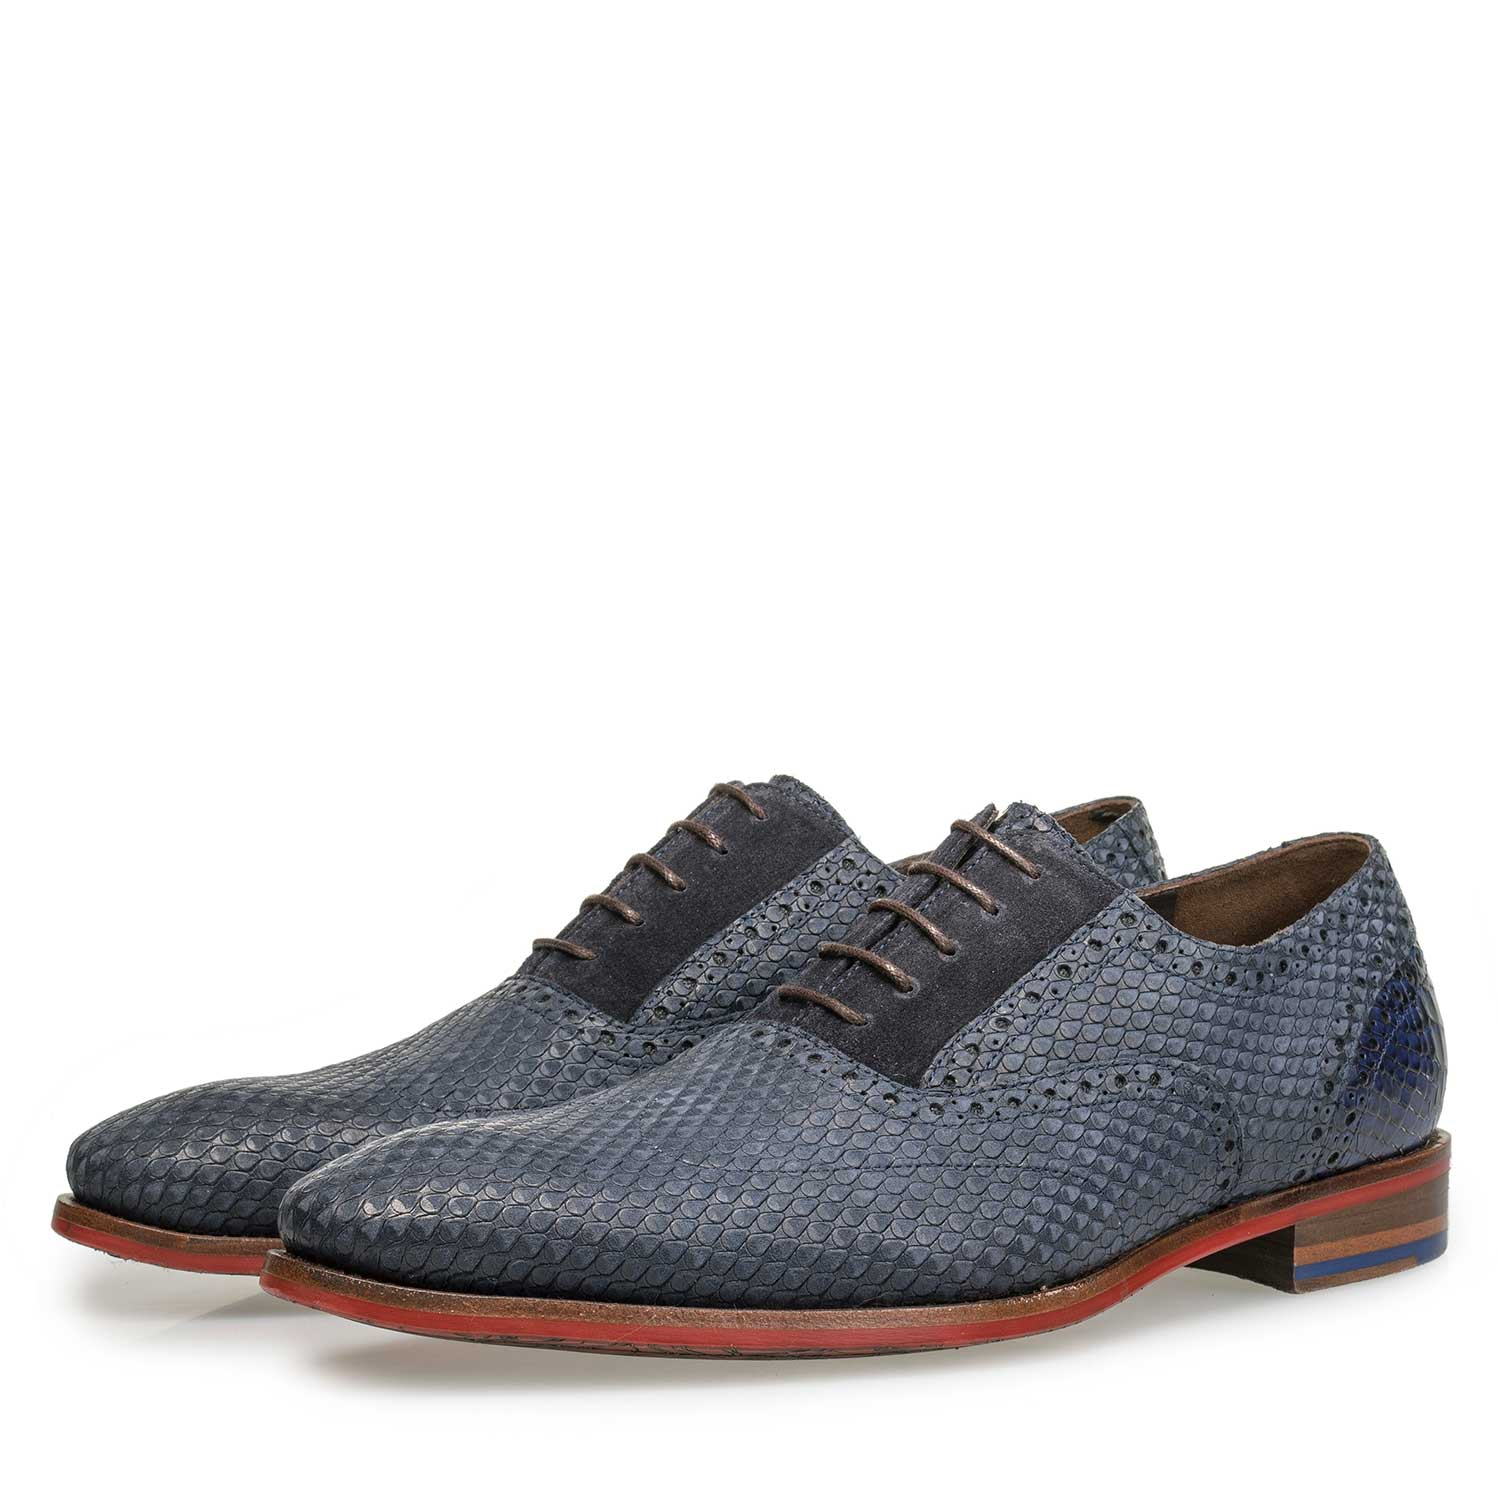 19119/01 - Blue nubuck leather lace shoe with snake print